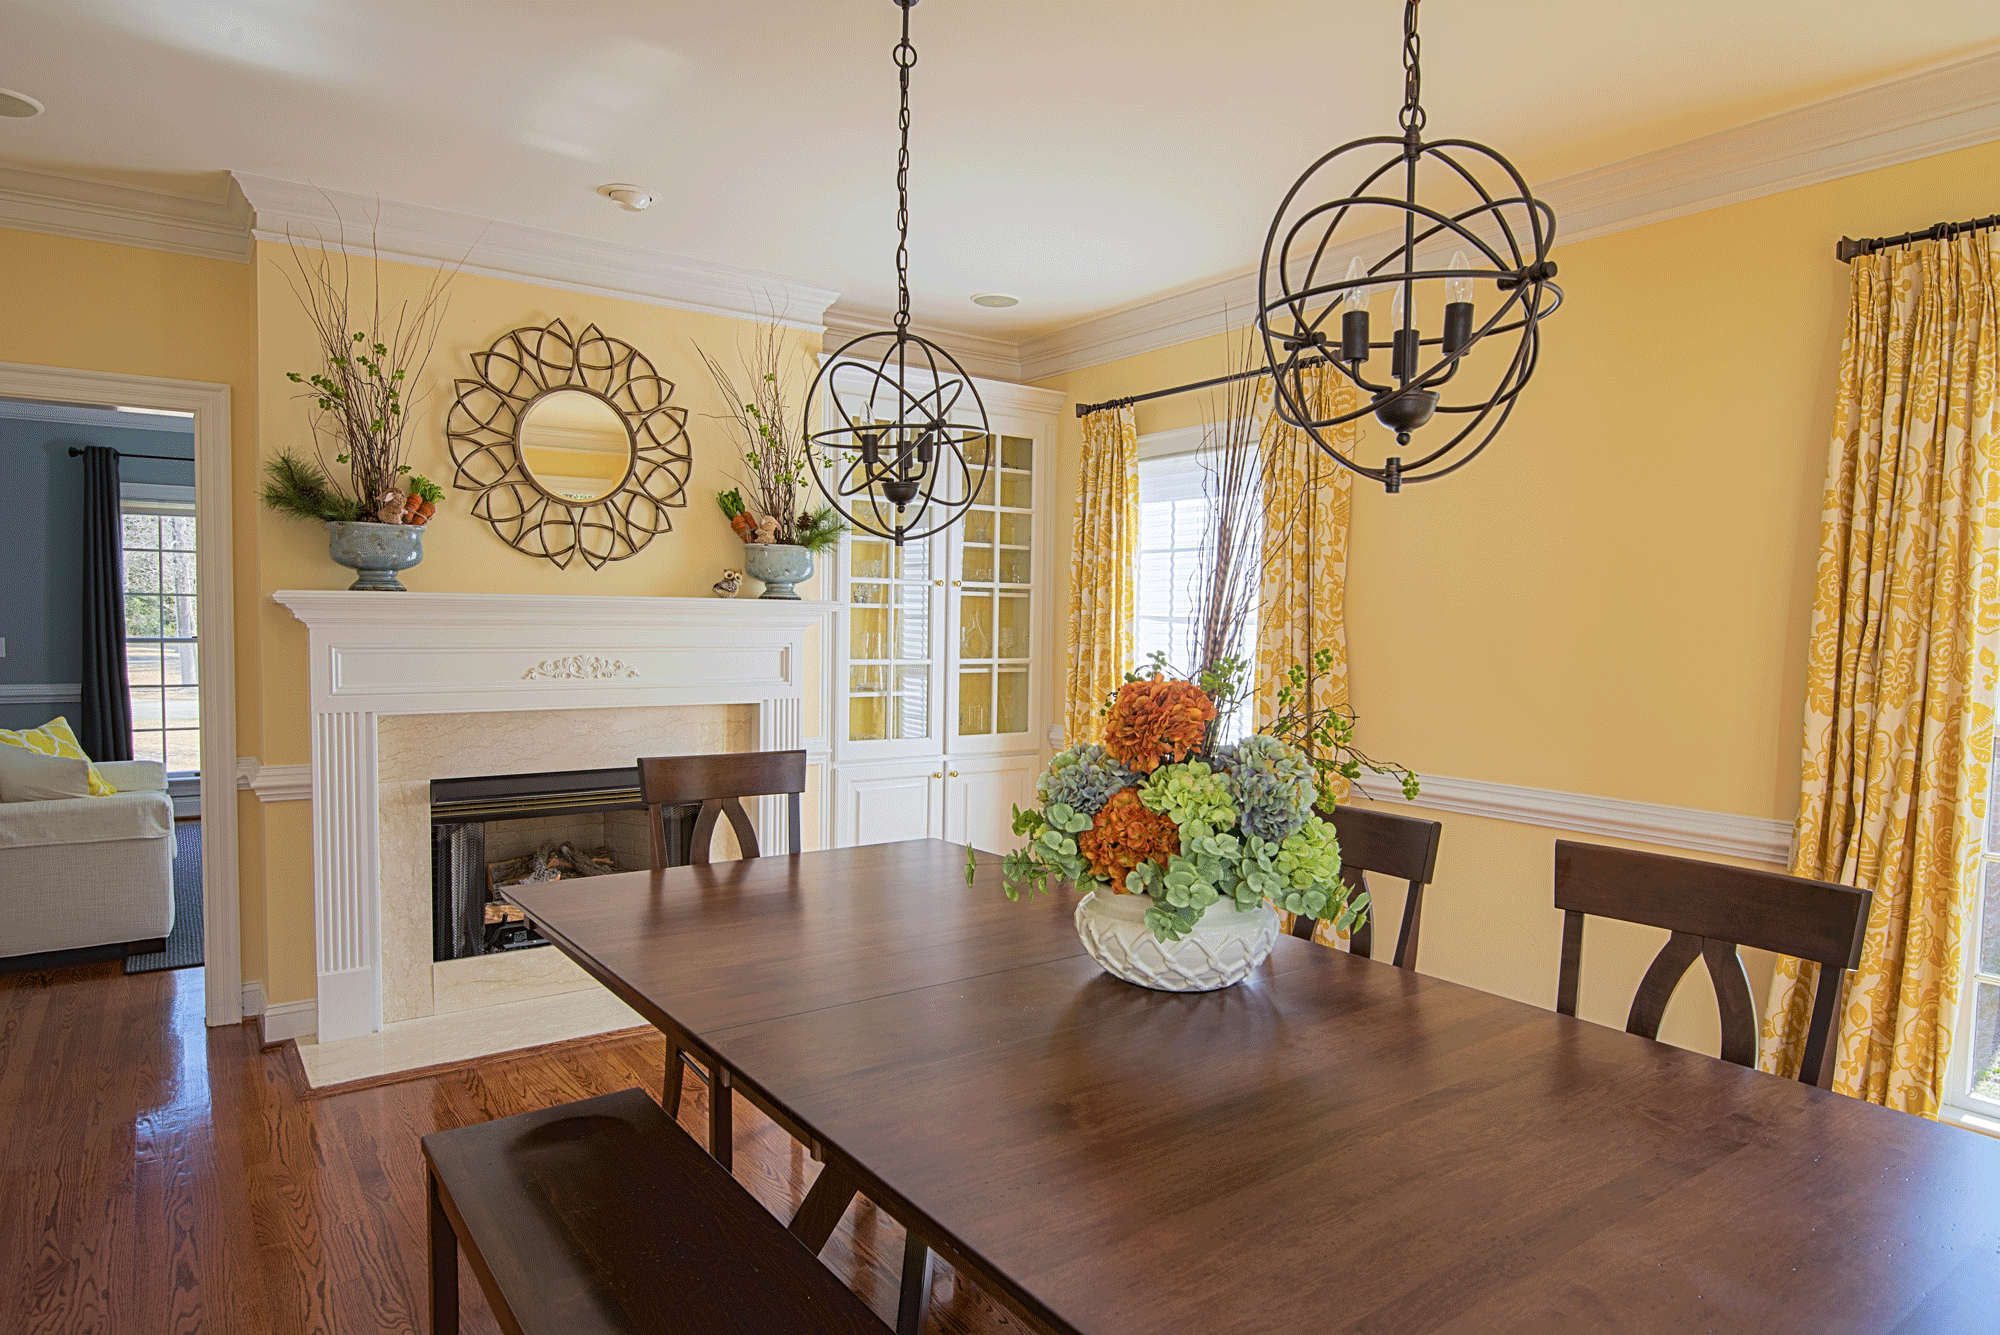 Dining room design with wall decor, mantle, fireplace, table decor, and pendant lights